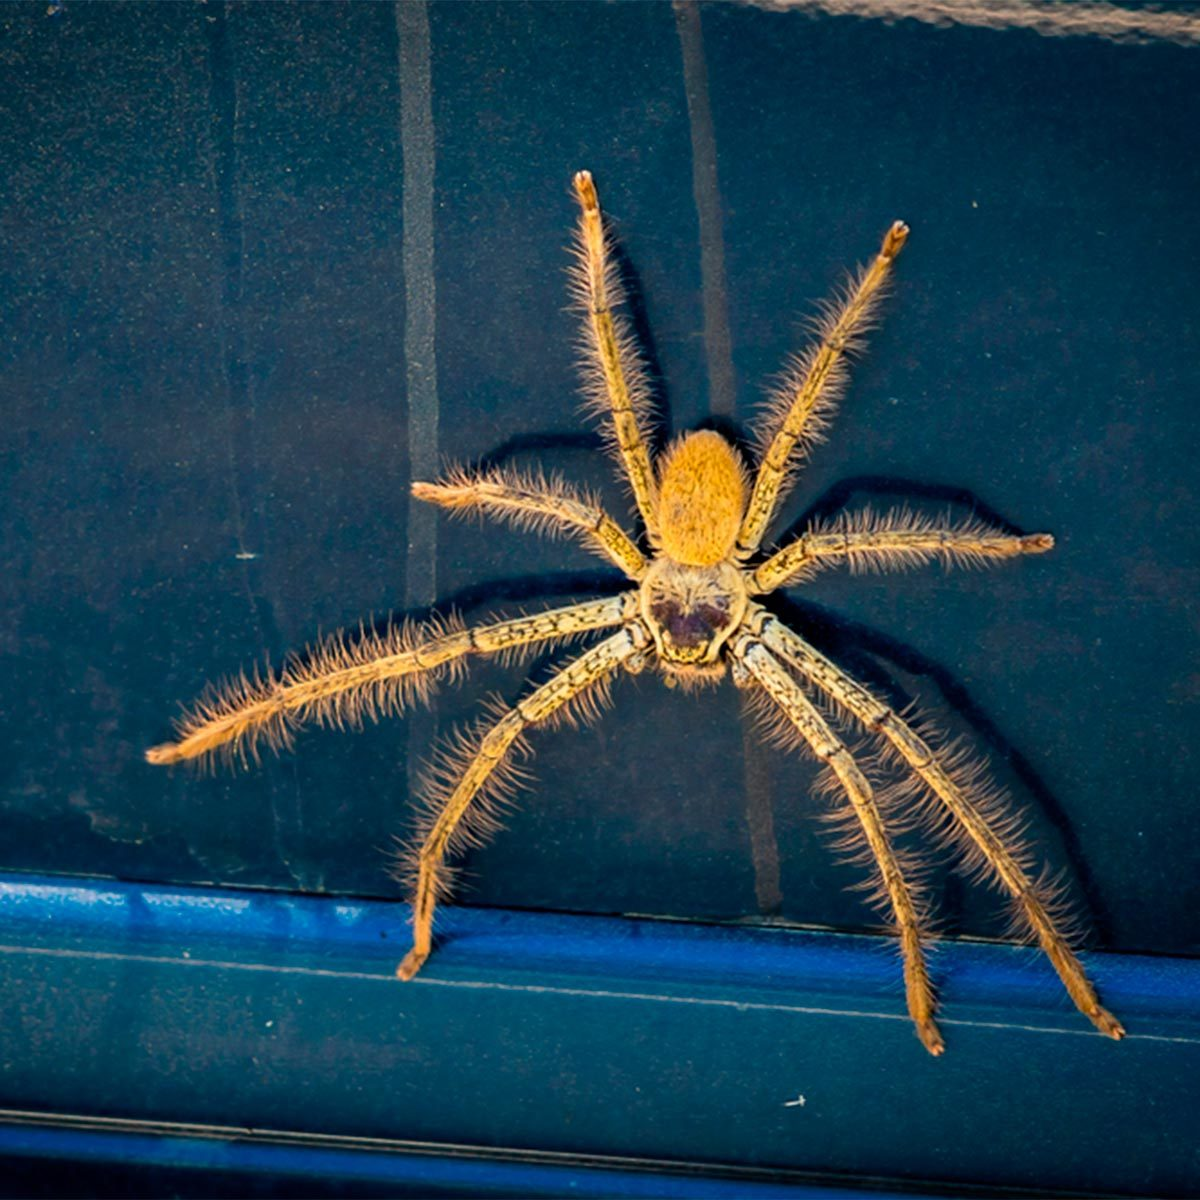 How To Quickly Get Rid Of Spiders In Your Car The Family